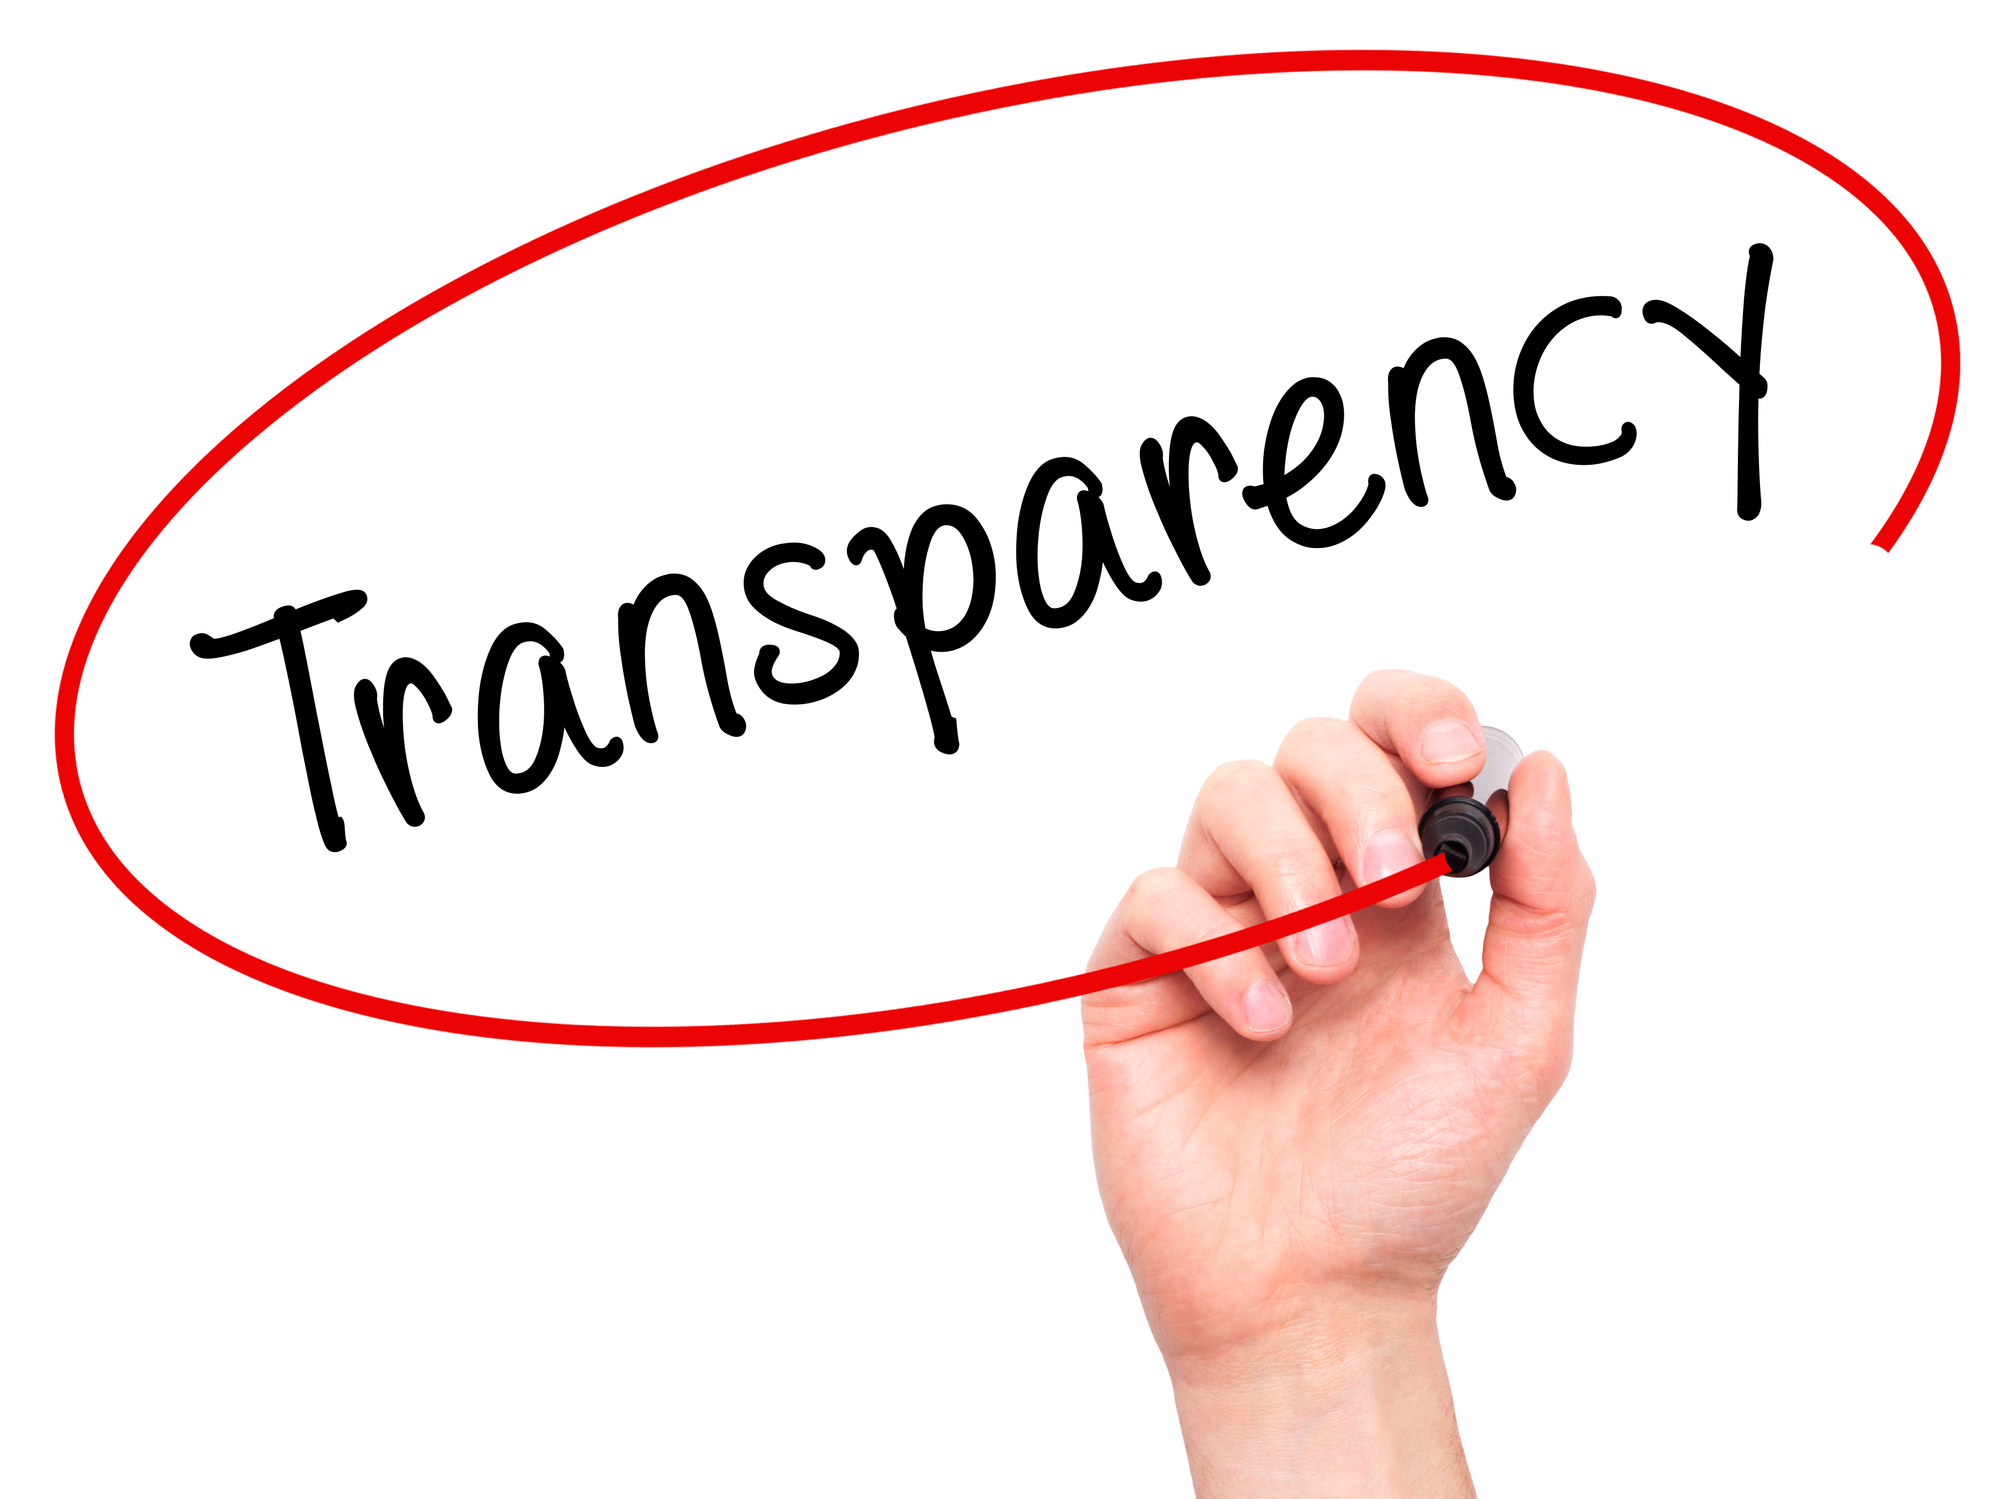 transparency voted ana  marketing word of the year  for good afternoon clipart free good afternoon clip art free